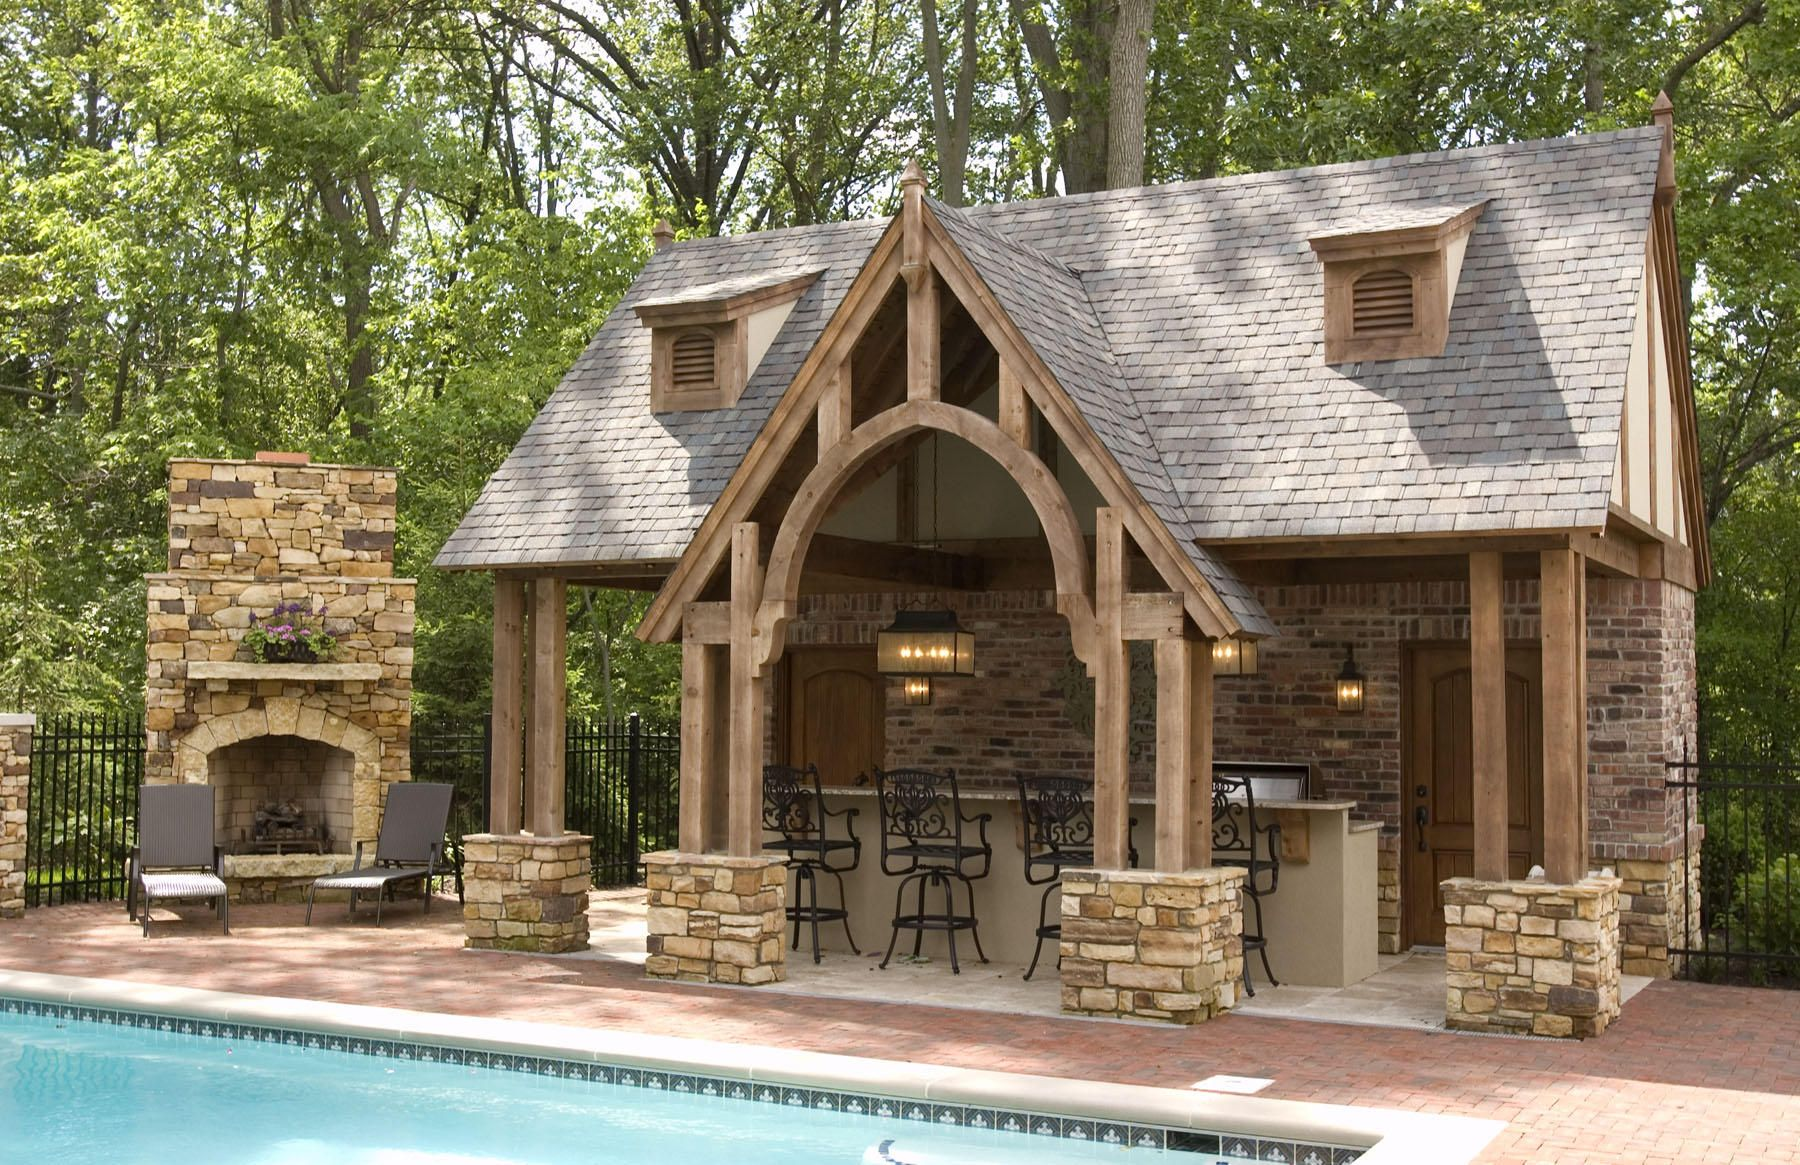 great outdoor kitchen bar pool house designs pool houses pool house plans on outdoor kitchen yard id=51233